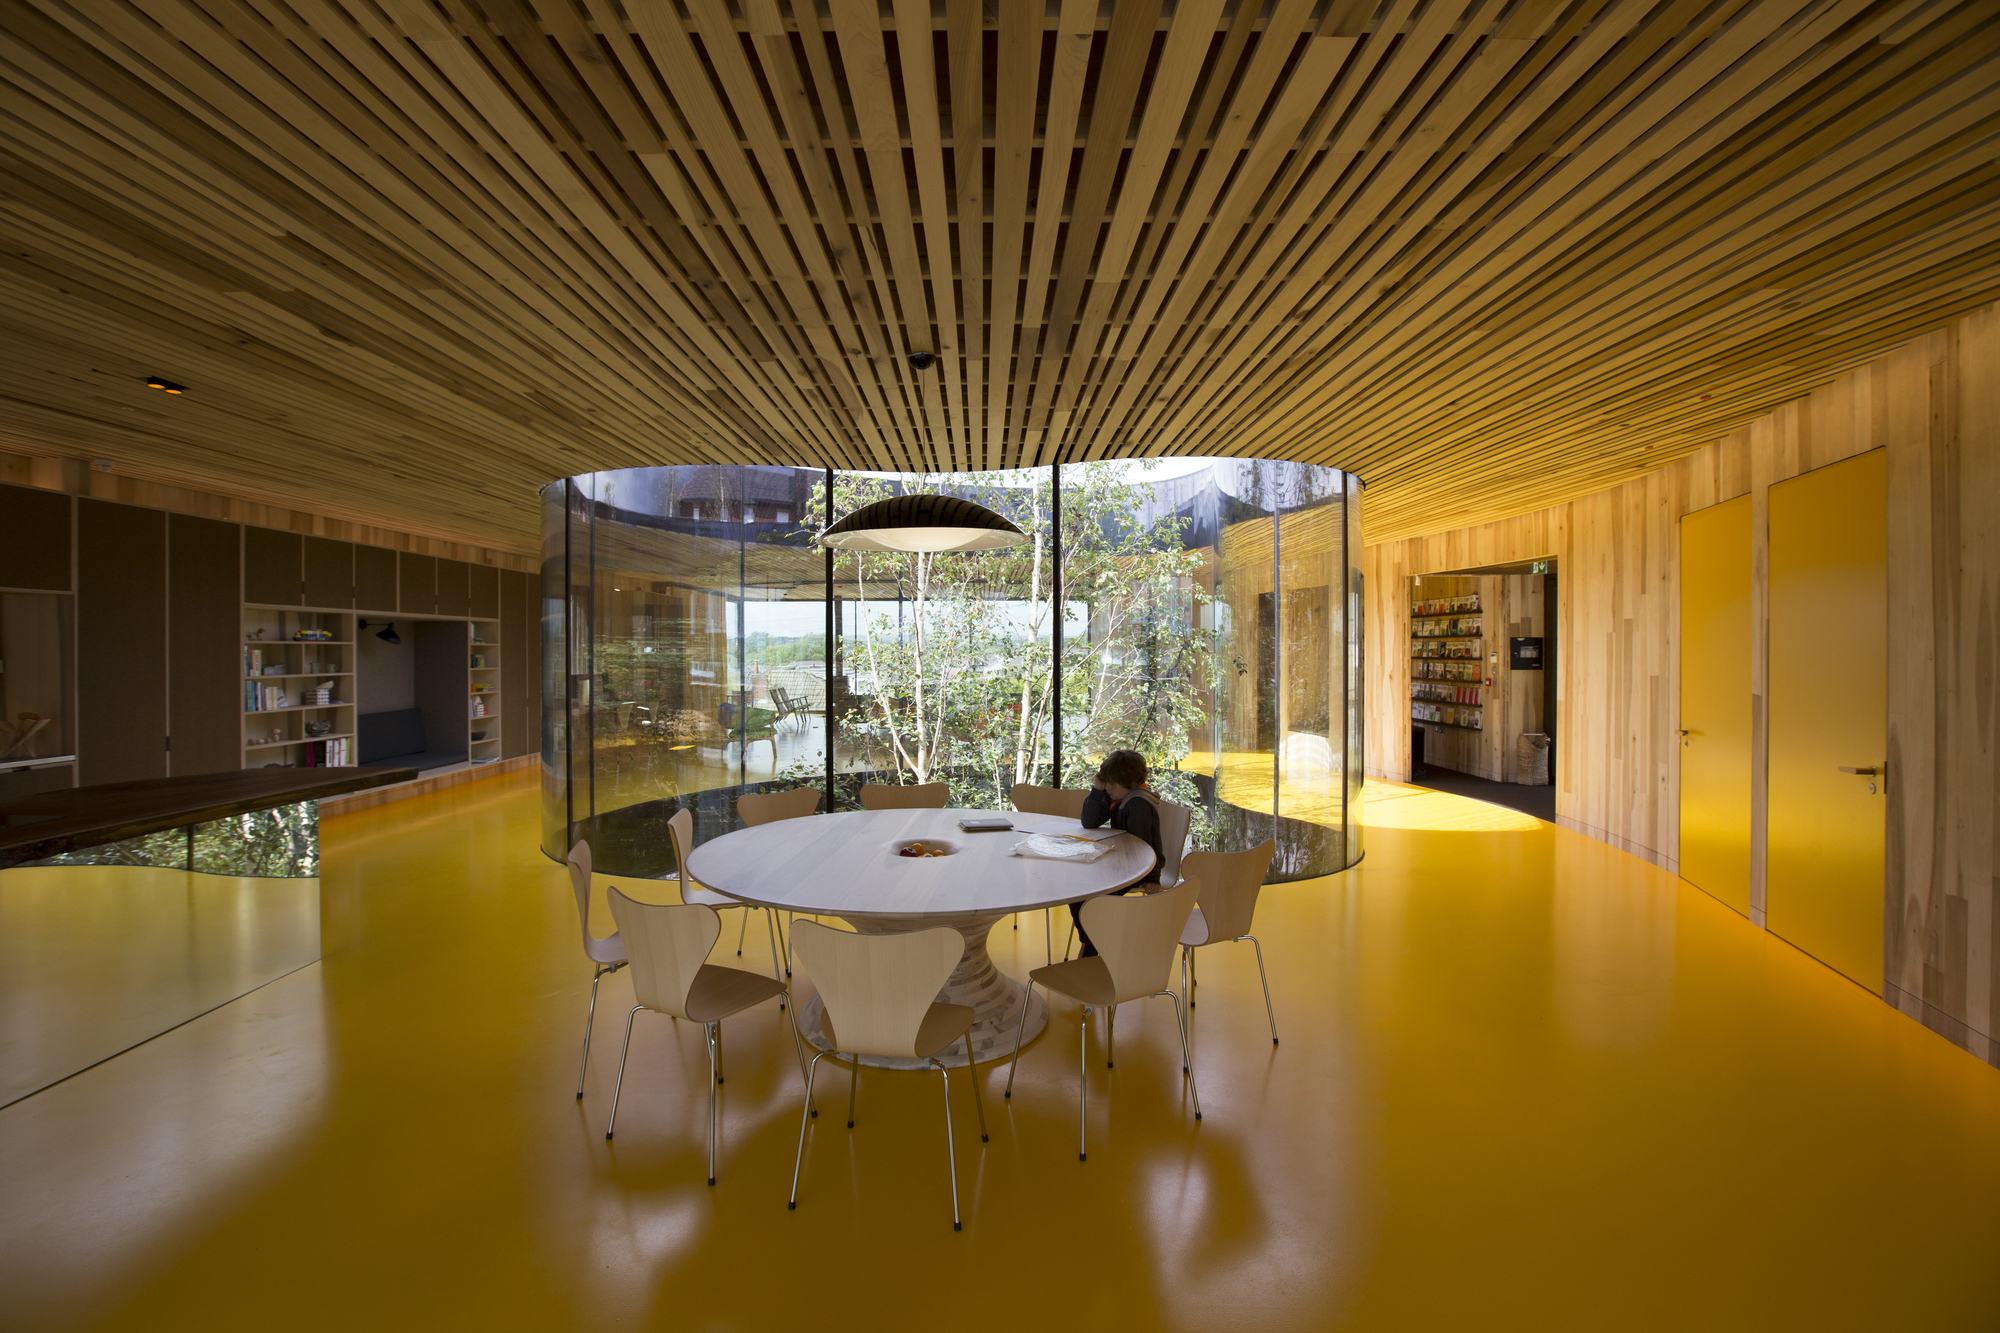 Rehabilitation Center architecture and design | ArchDaily